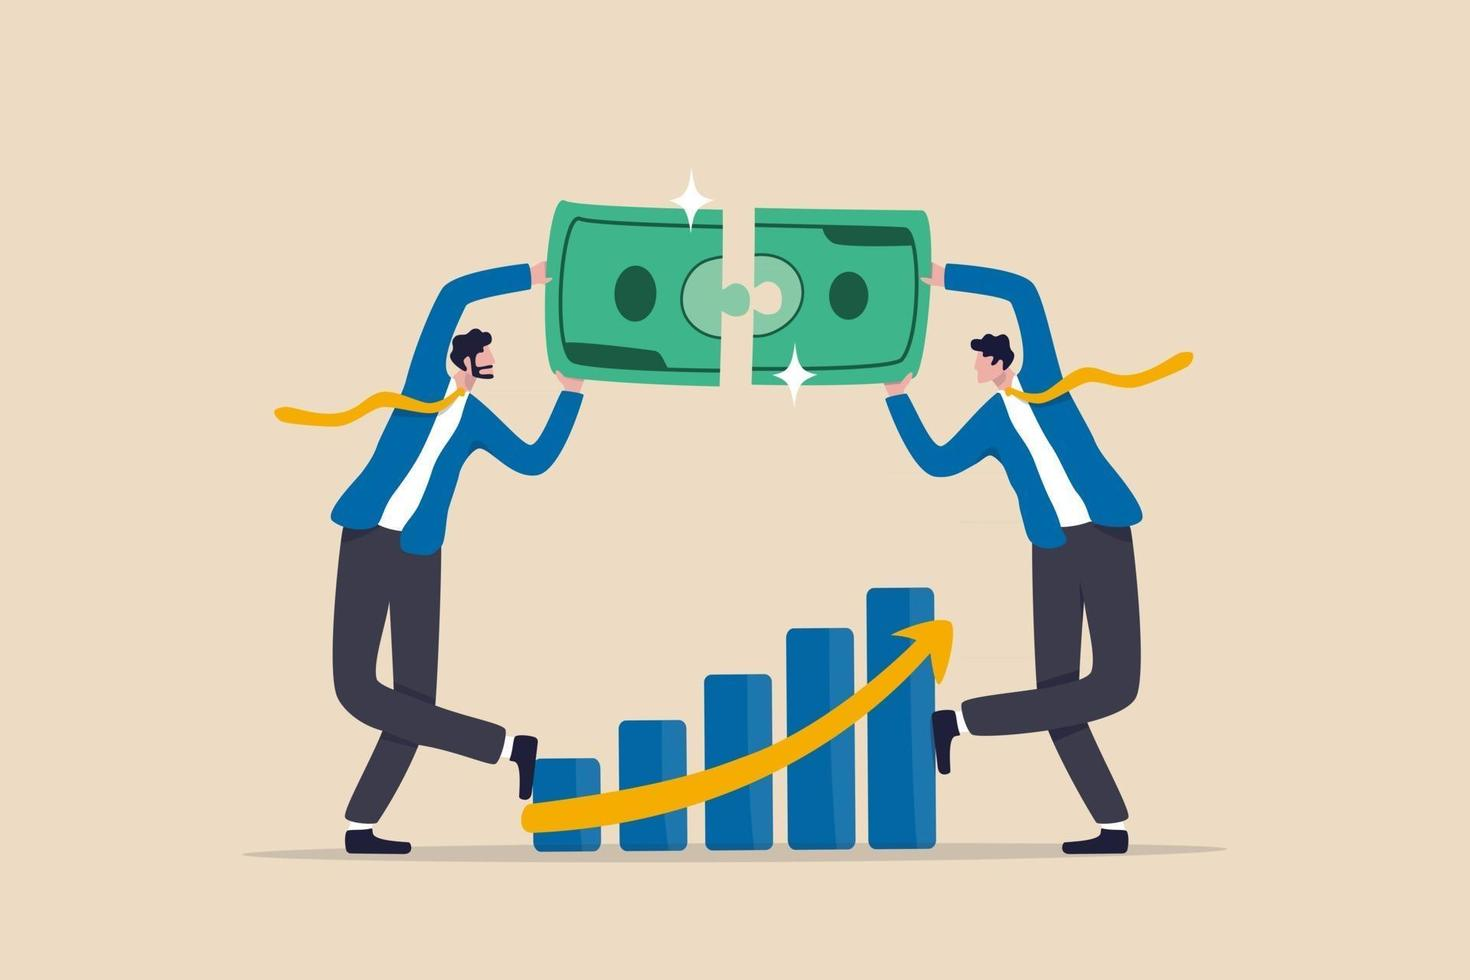 Wealth management, financial professional consultant solve money problem, planning and strategy for success investment, businessman wealth expert team solving money jigsaw with profit growth graph. vector